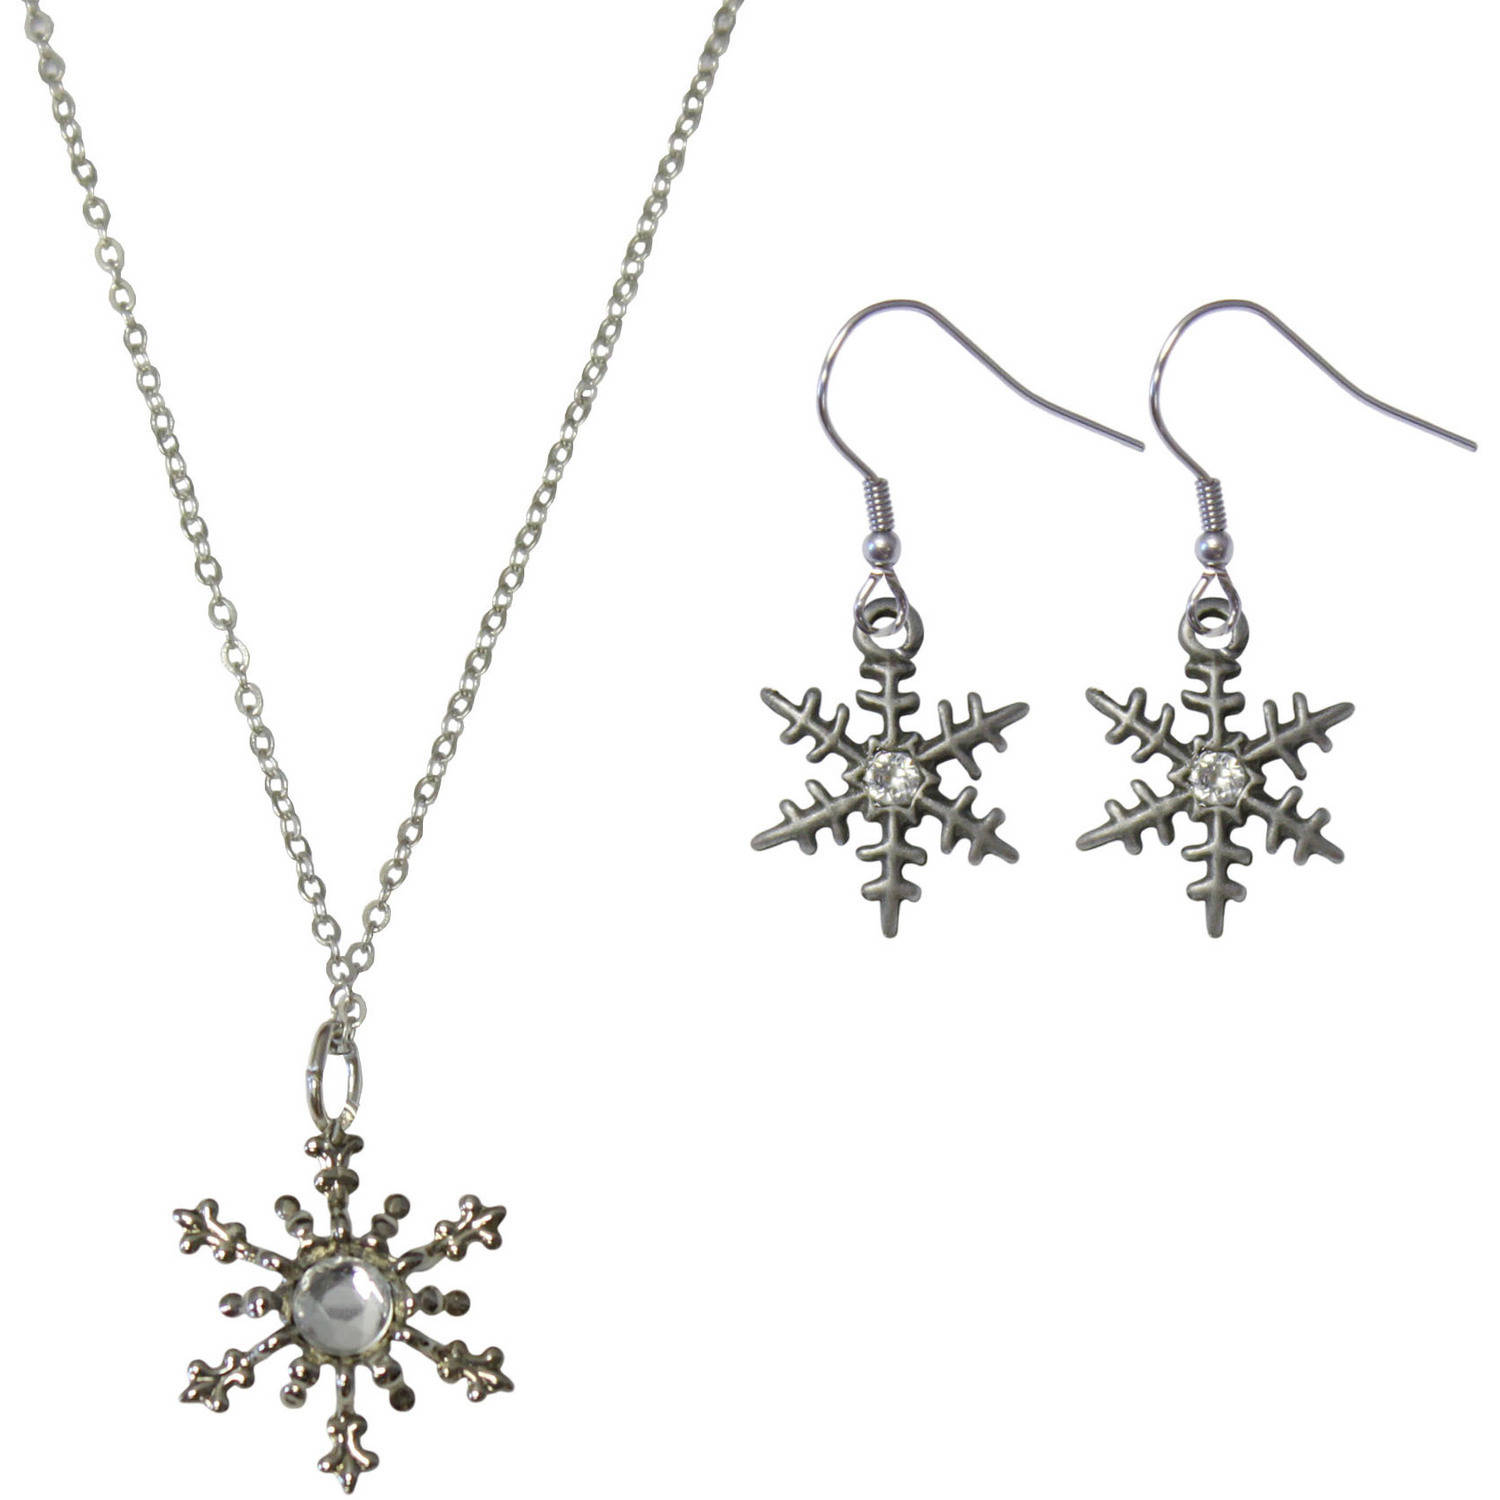 Gloria Duchin Snowflake Necklace and Earrings Jewelry Set